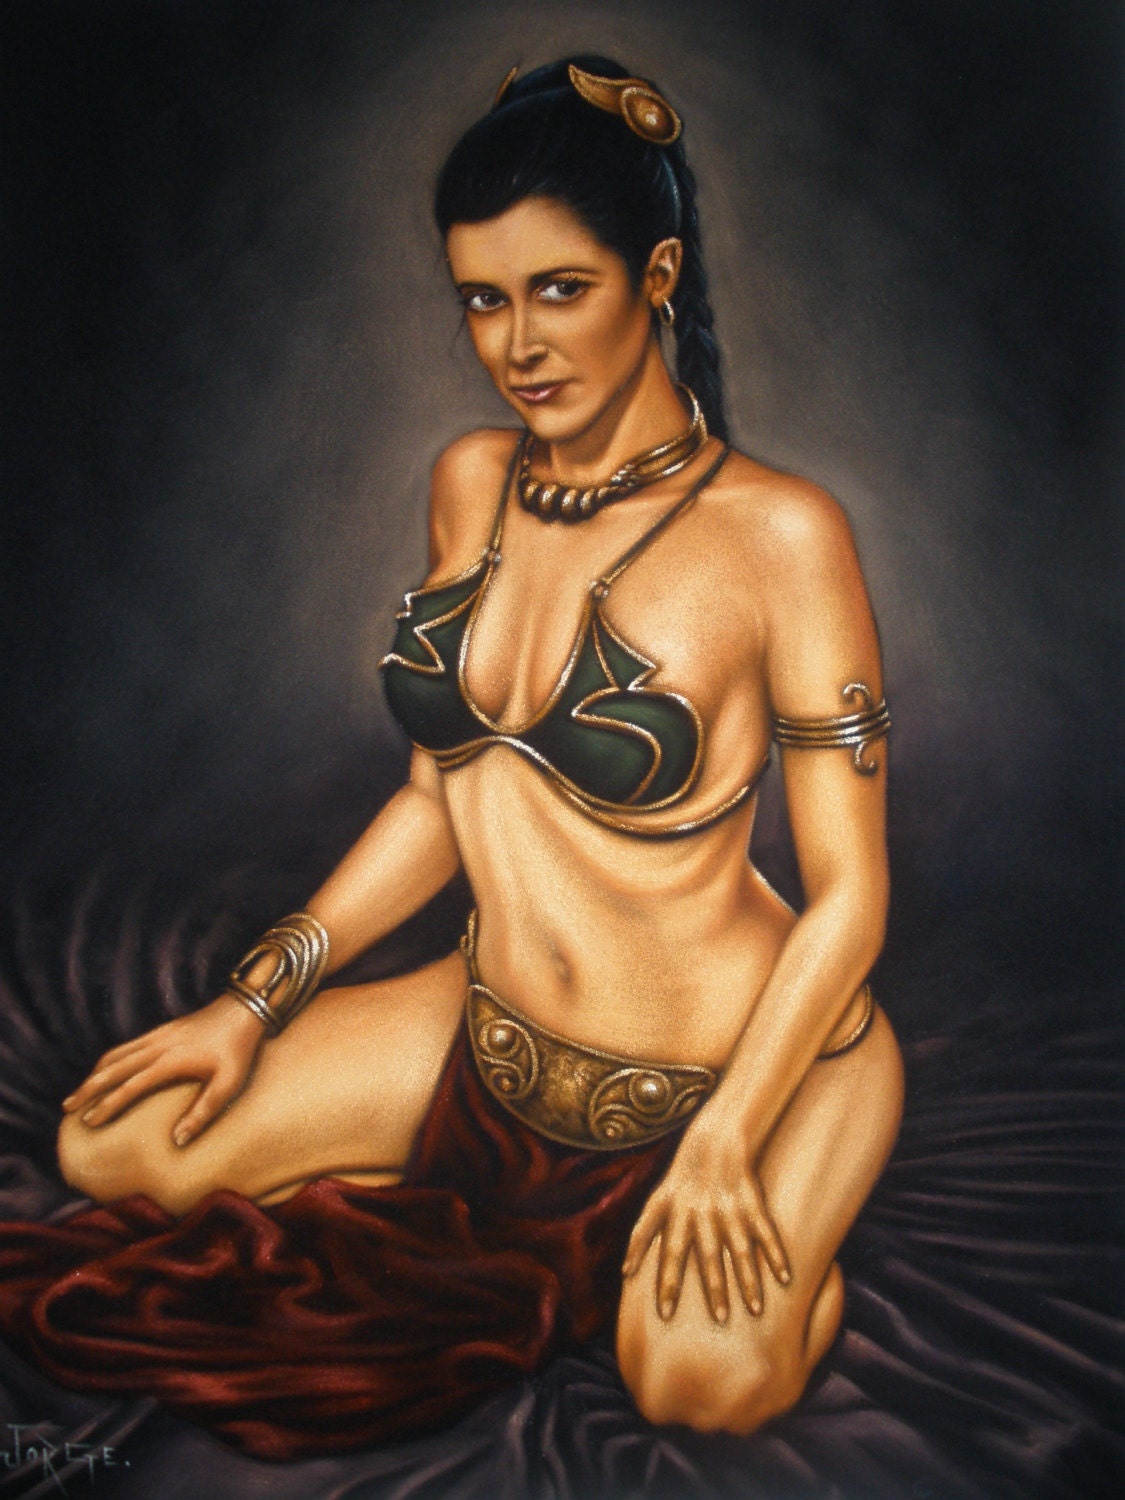 Princess leia sexy wallpapers hentay clip